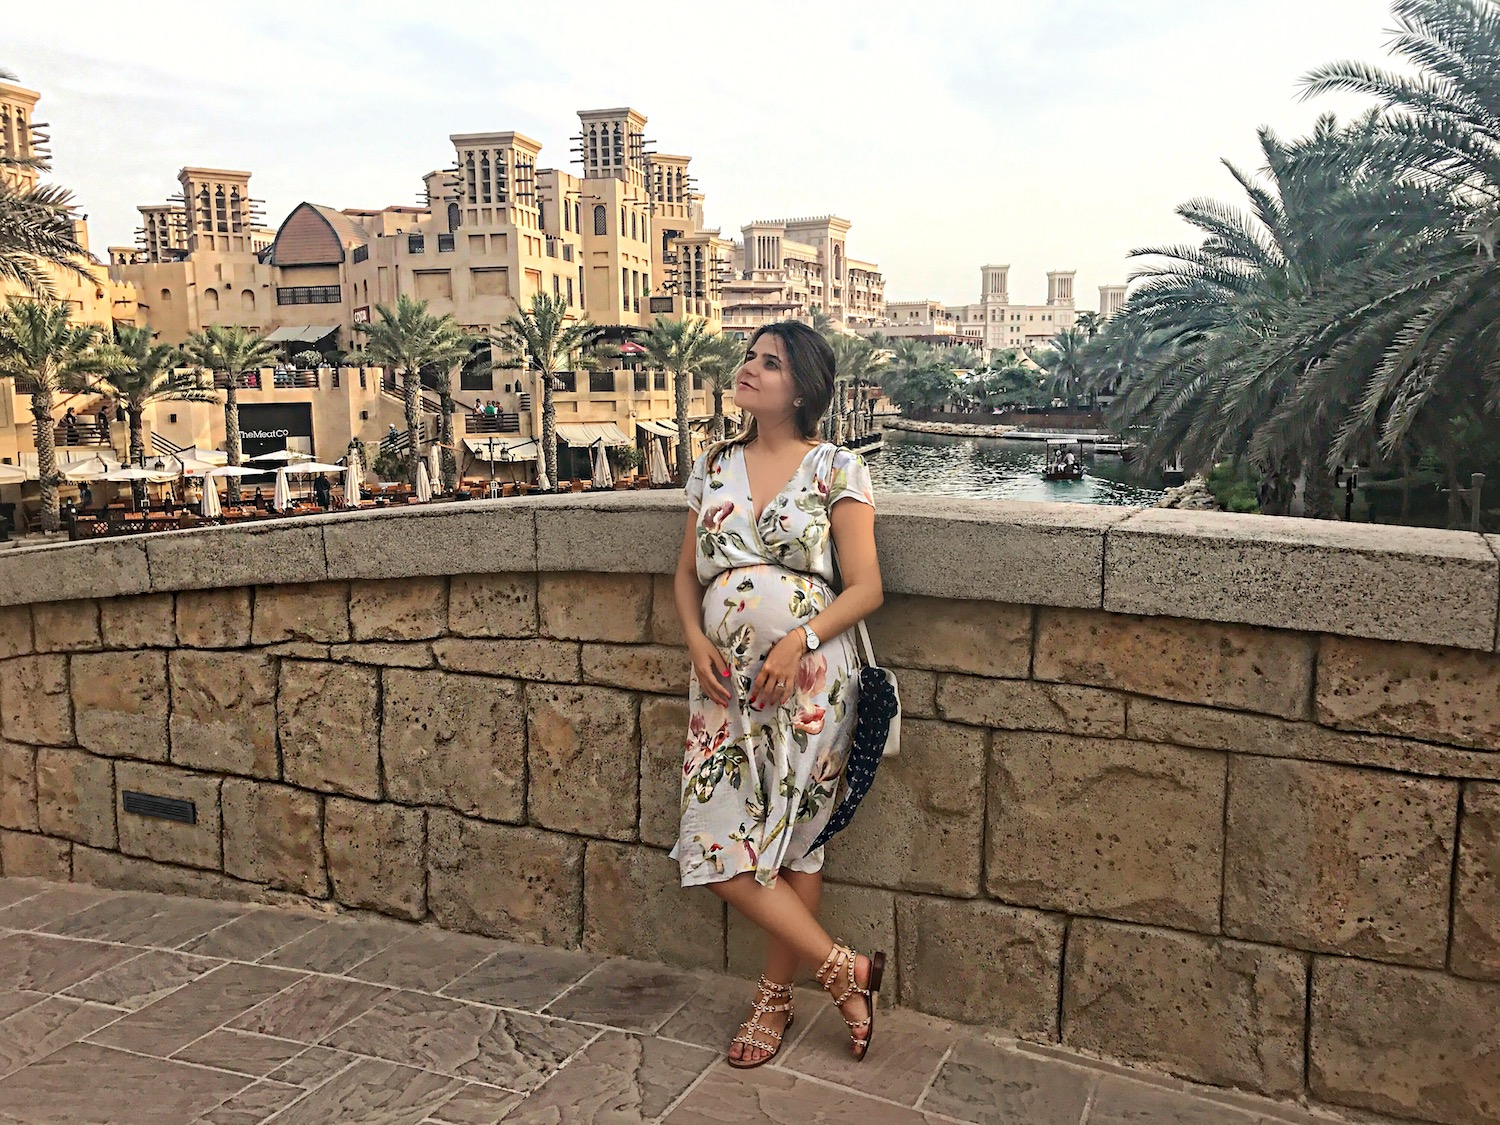 dubai-al-madinat-alley-girl-fashion-travel-luxury-blogger-betul-yildiz-new-york-lifestyle